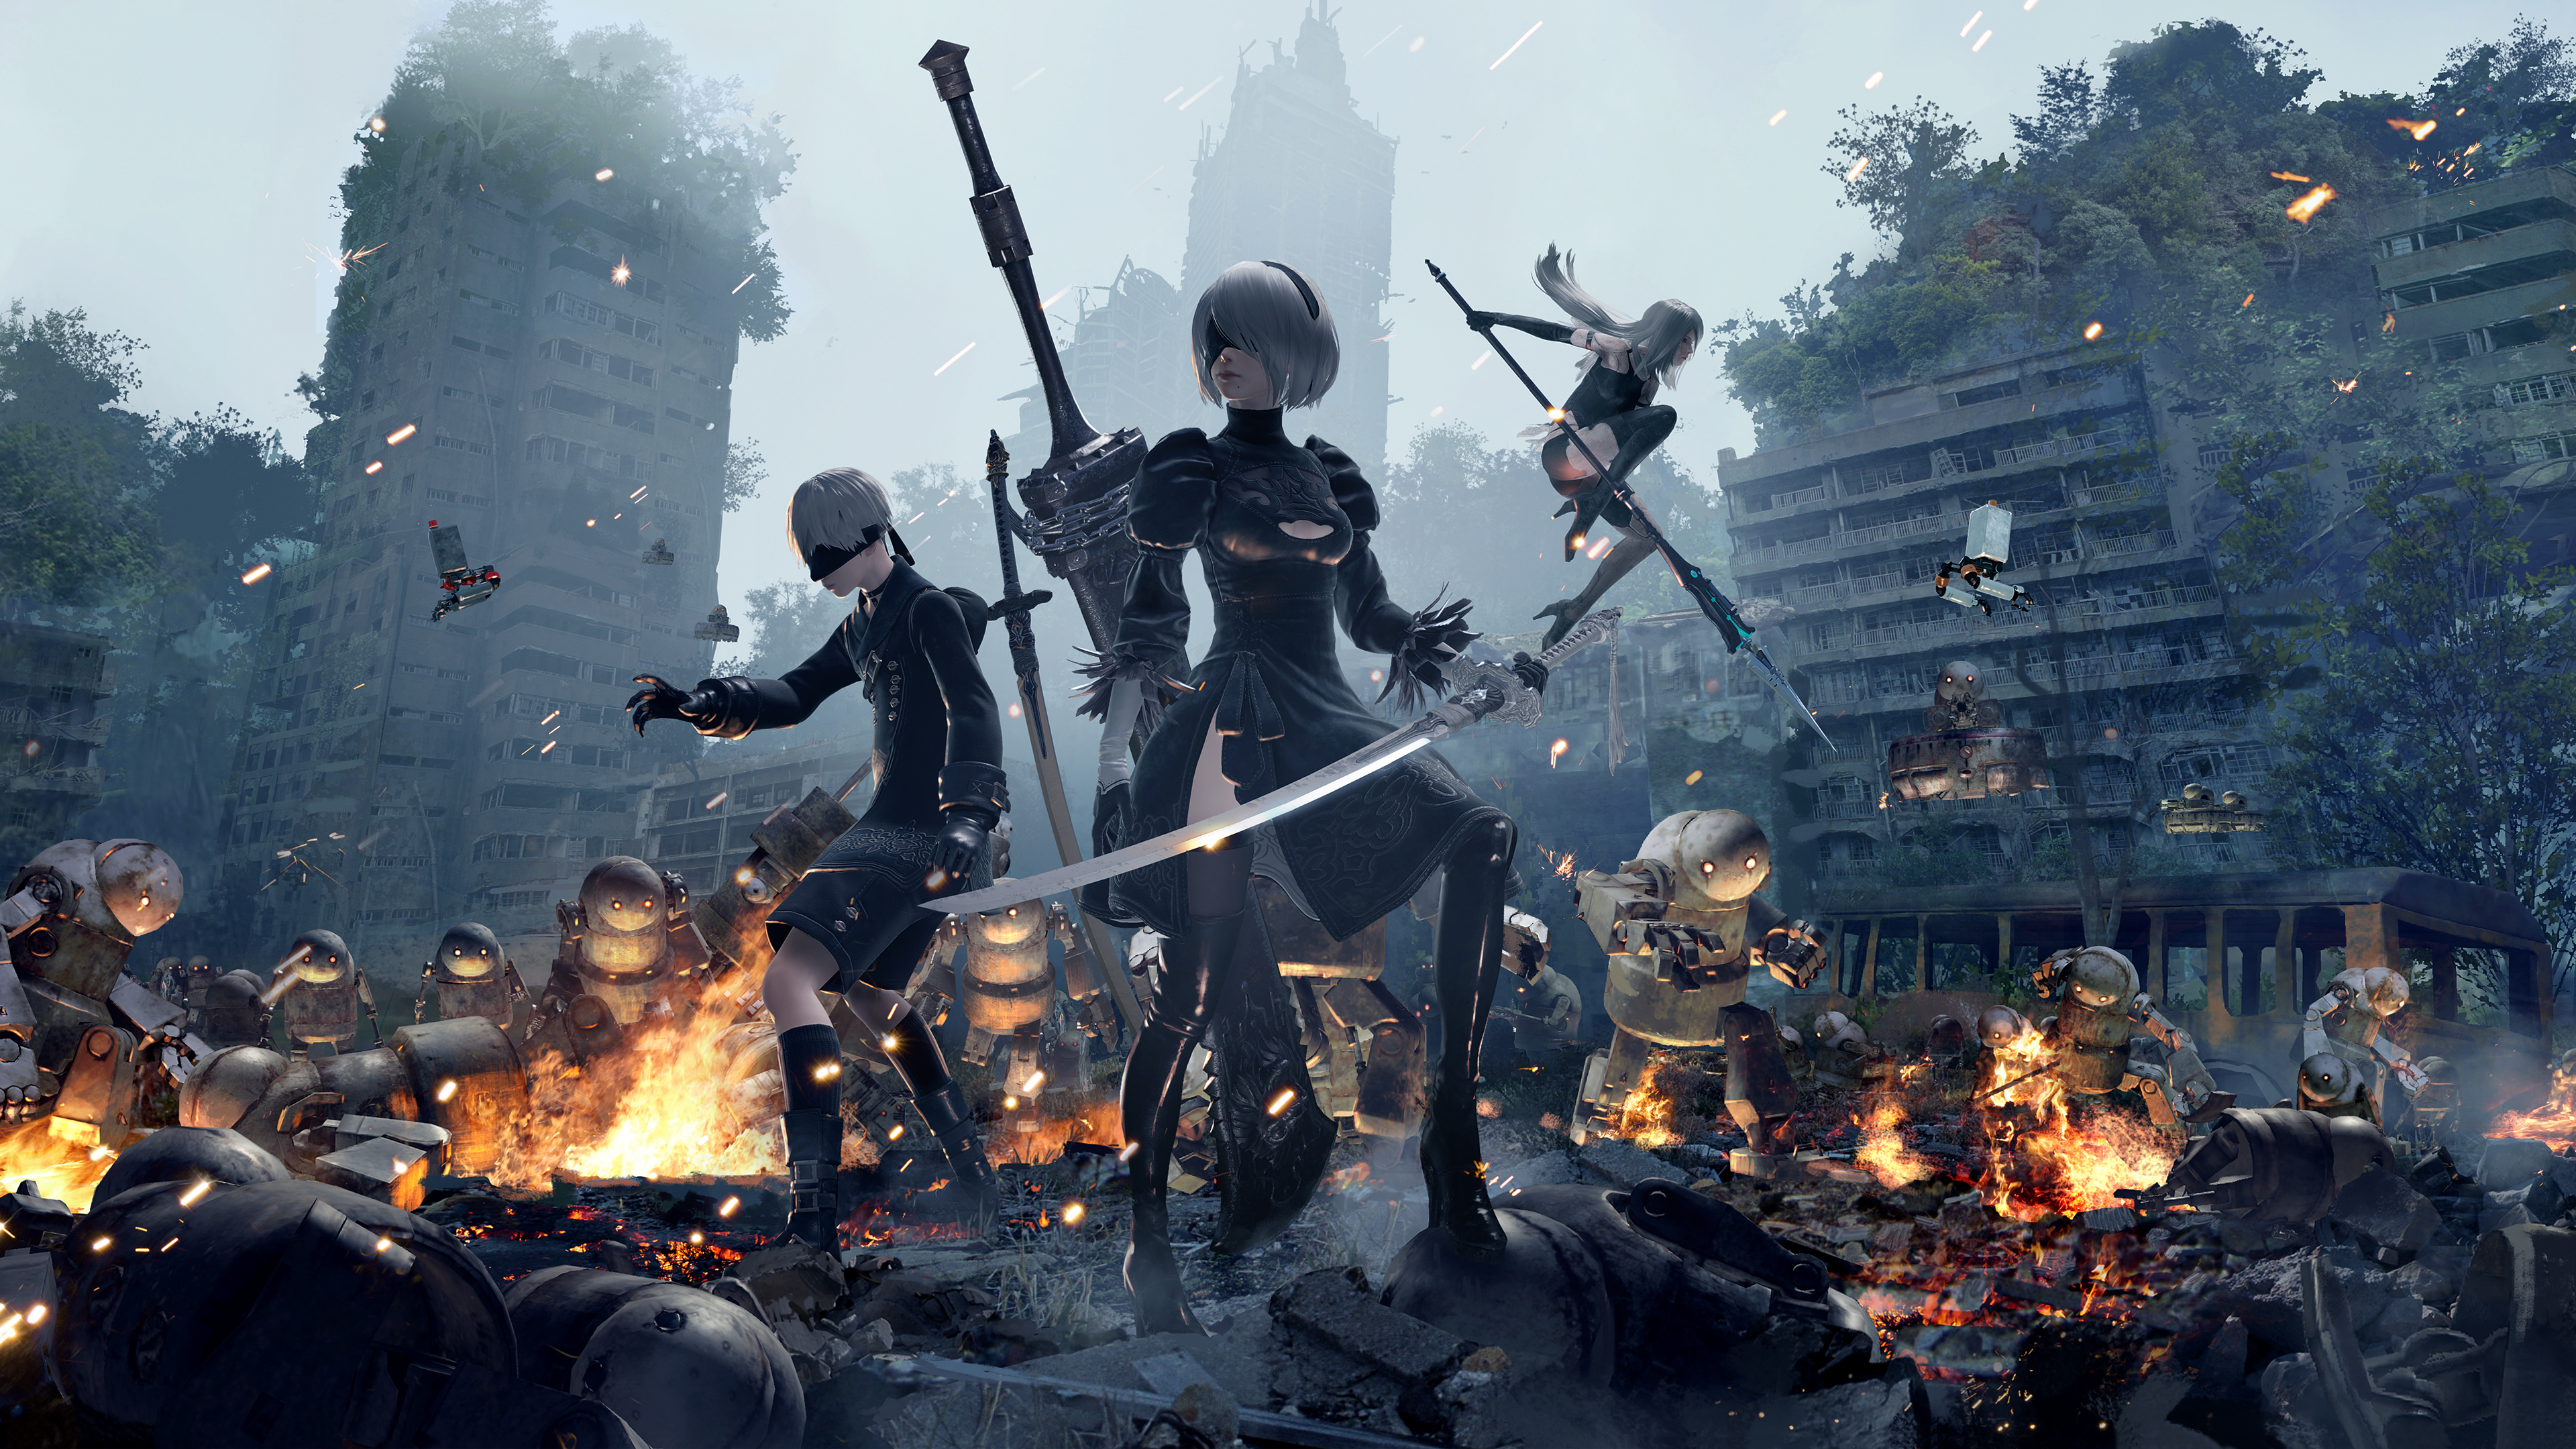 9S 2B And A2 NieR Automata 4k, HD Games, 4k Wallpapers ...